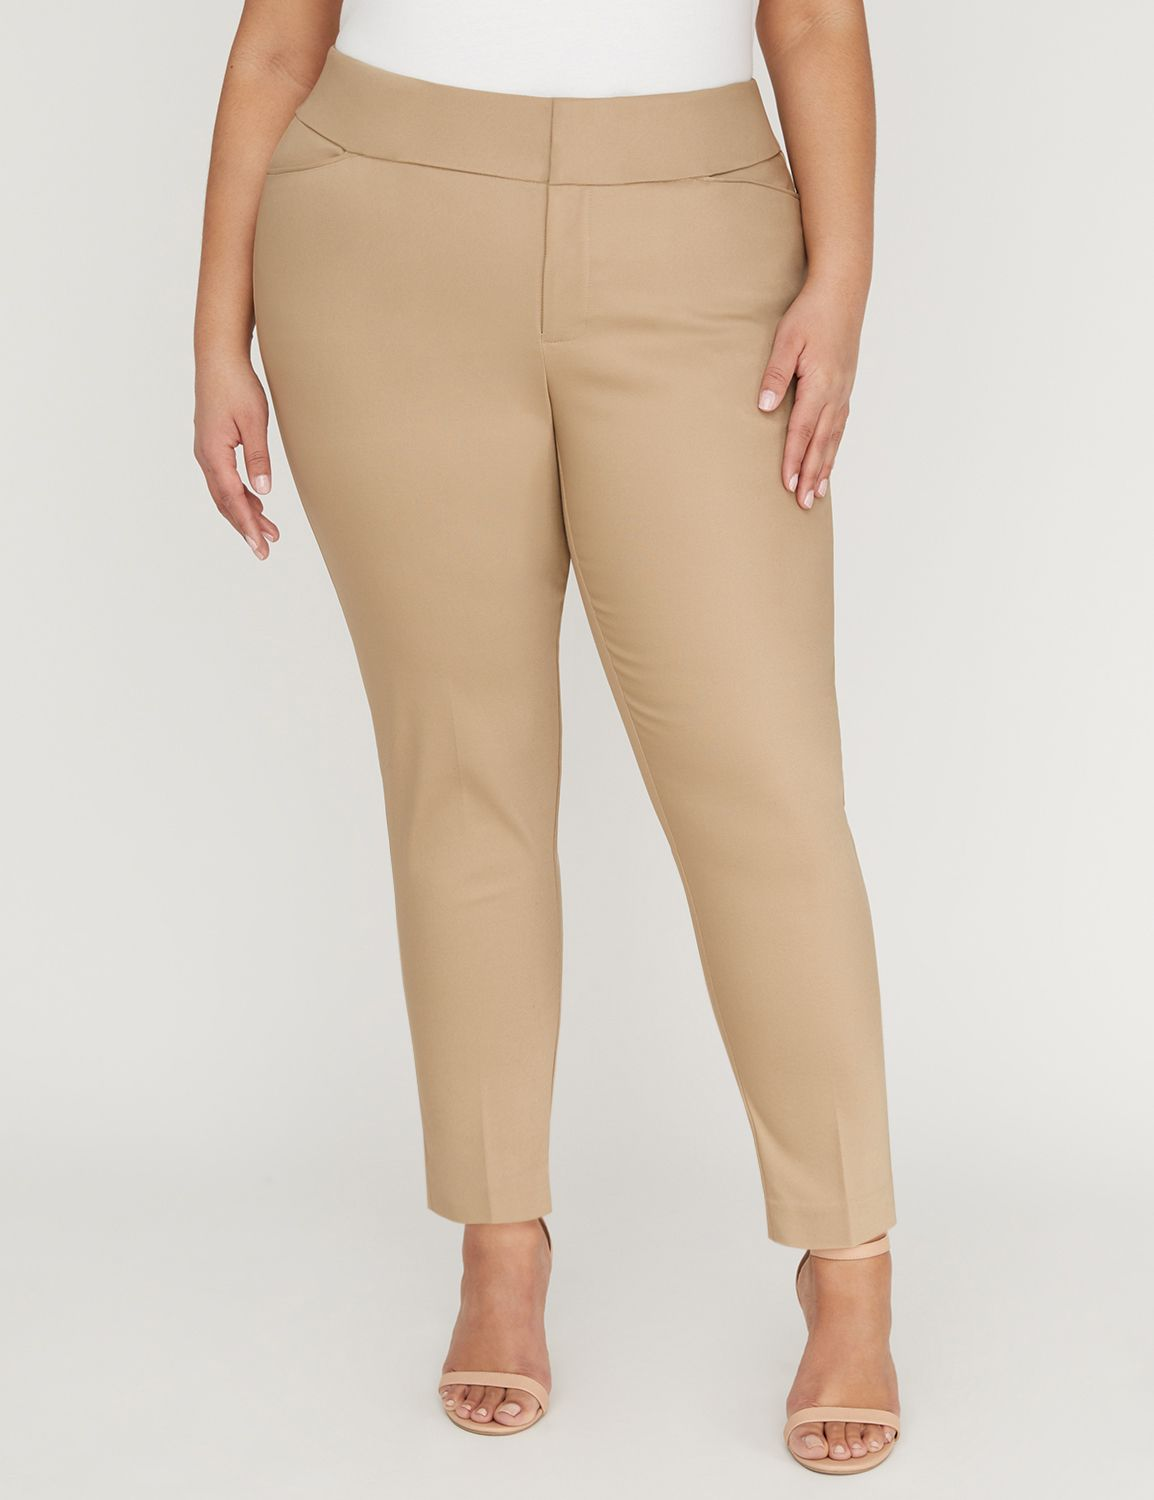 Updated Modern Stretch Ankle Pant 1087775 MODERN STRETCH WIDE WAISTBA MP-300097624